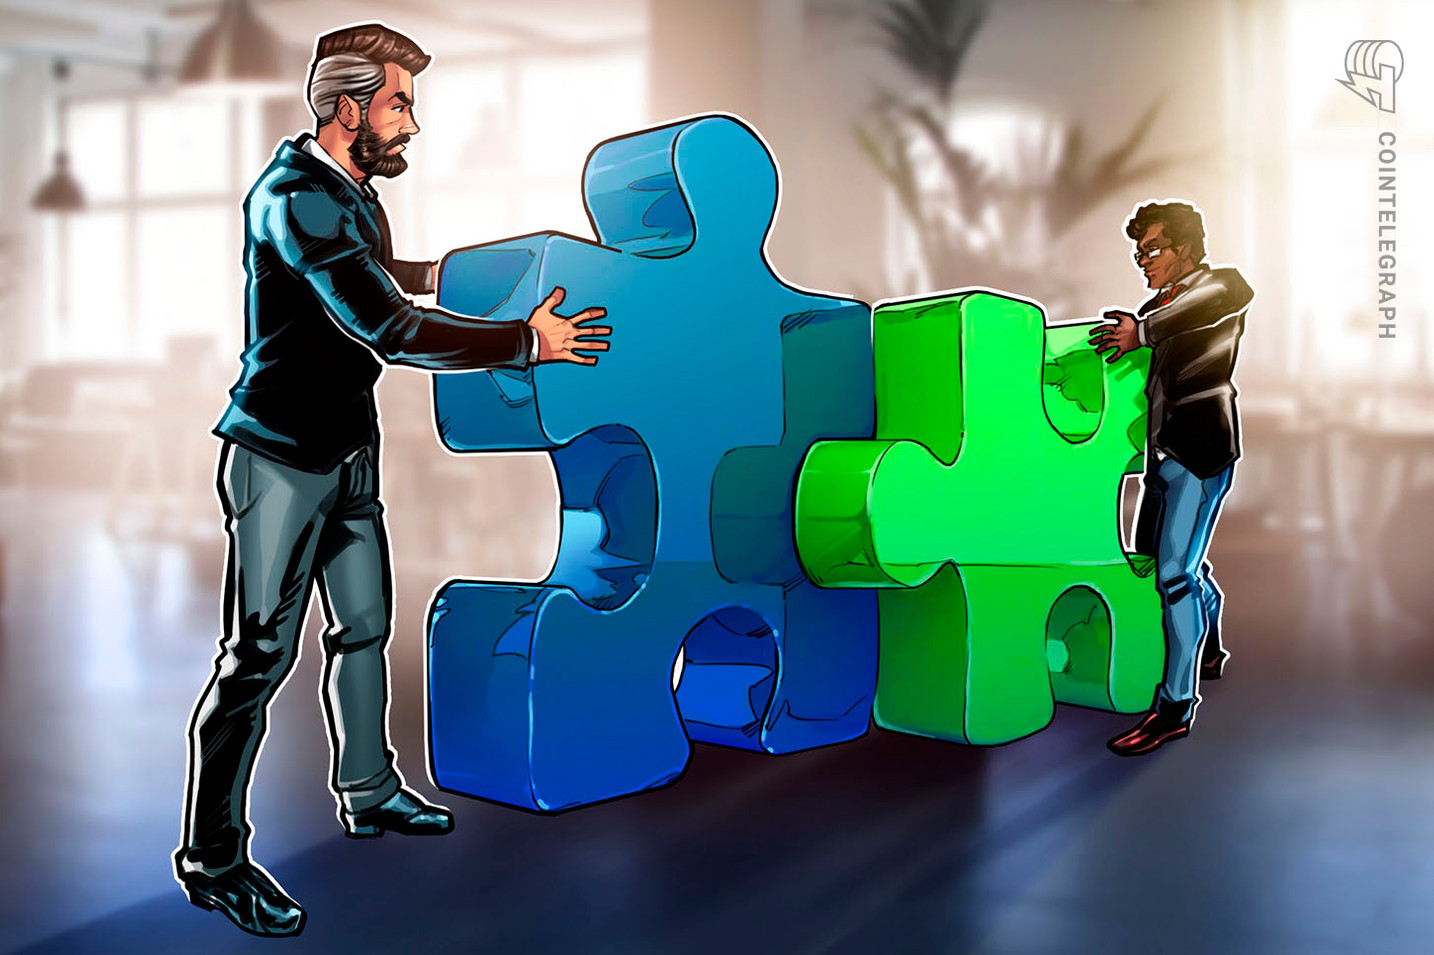 Exclusive: Blockchain-Based Social Network Overhauls Platform, Partners With Matic